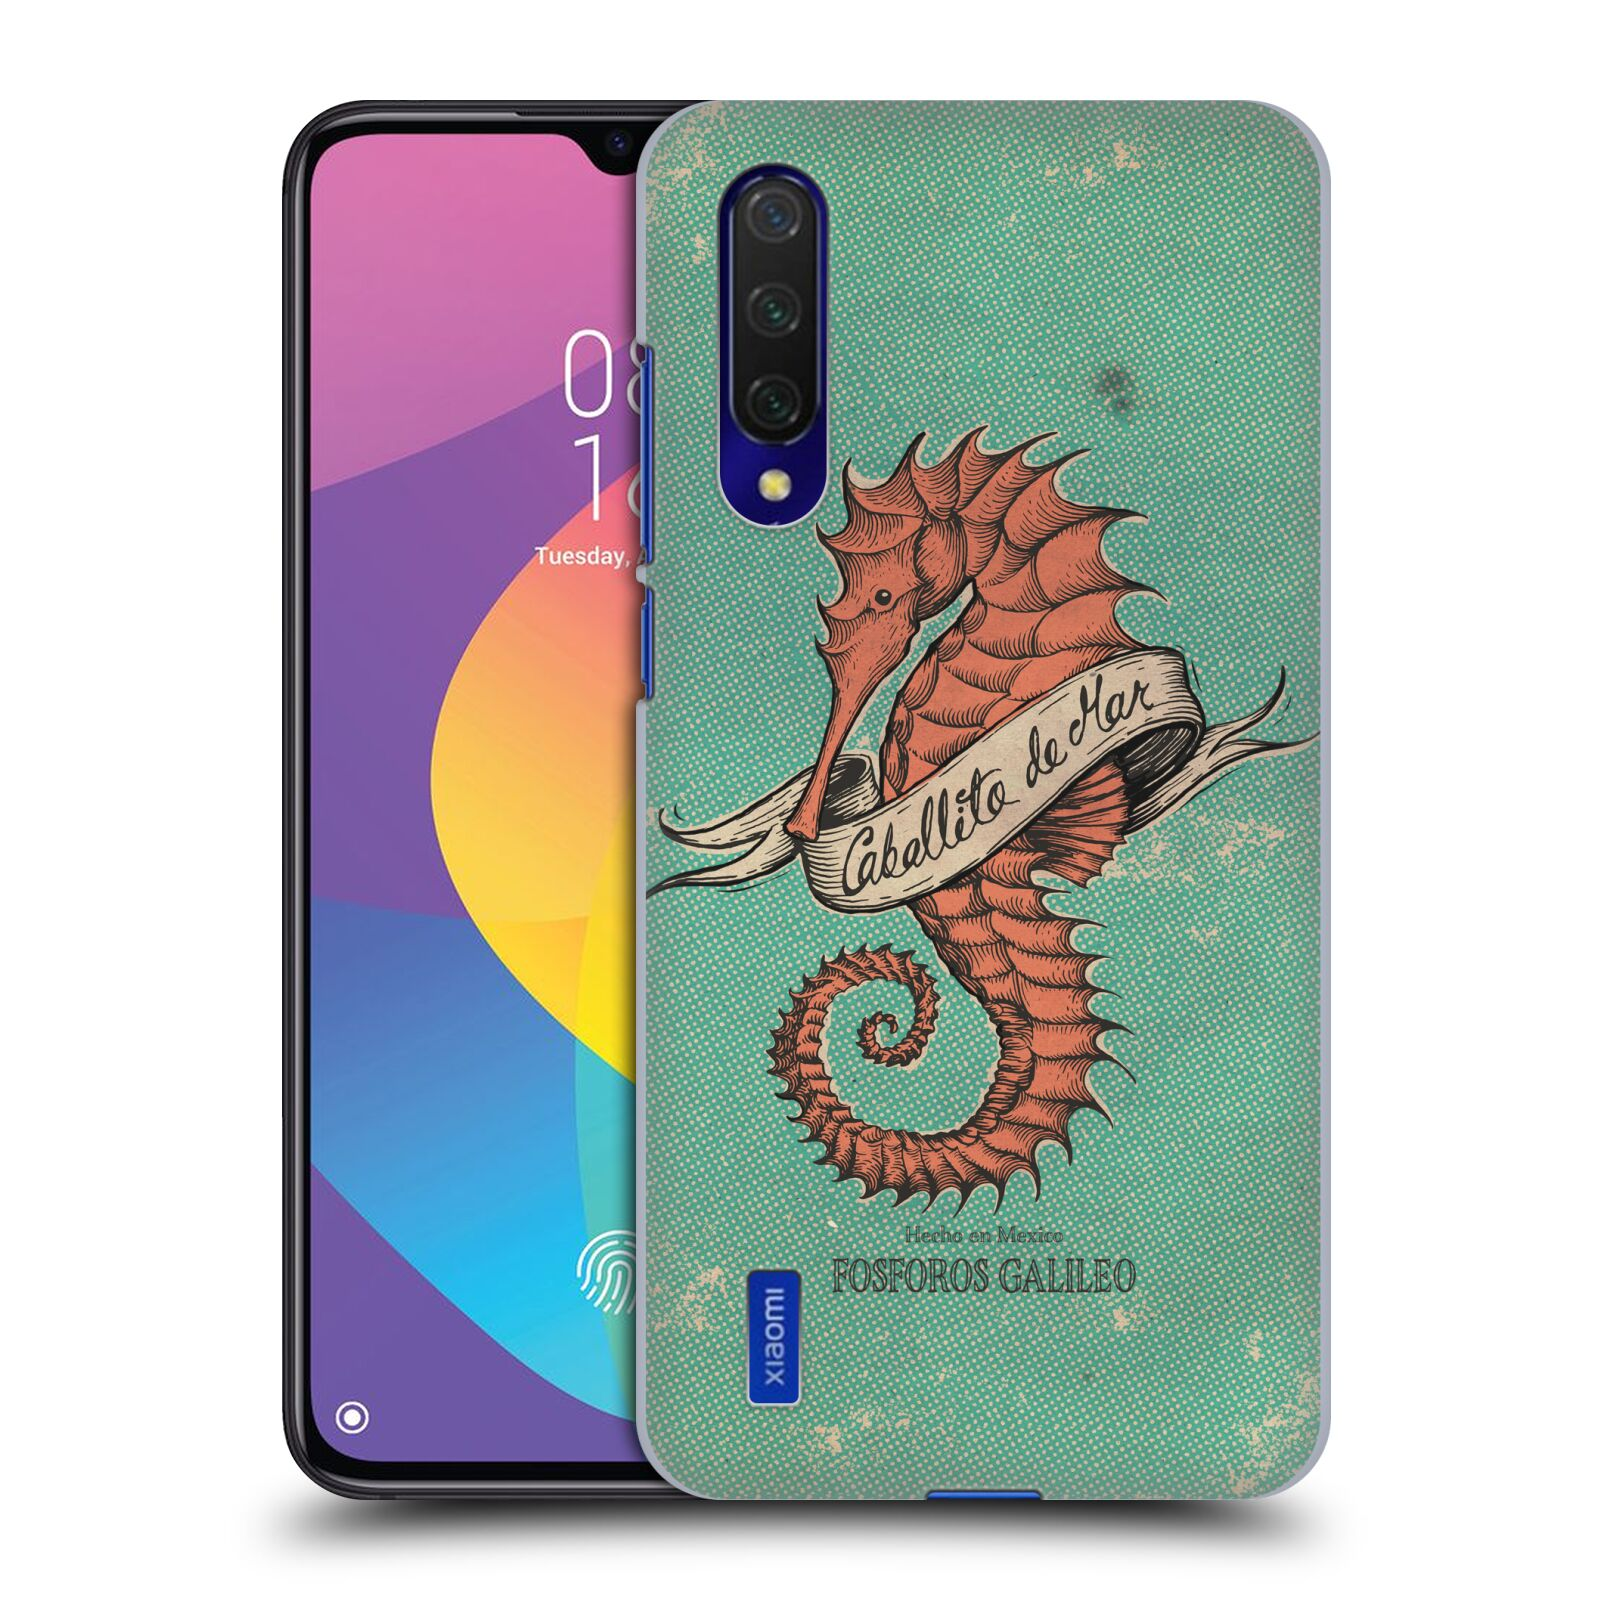 Official Fosforos Galileo Diseños Caballito De Mar Case for Xiaomi Mi 9 Lite